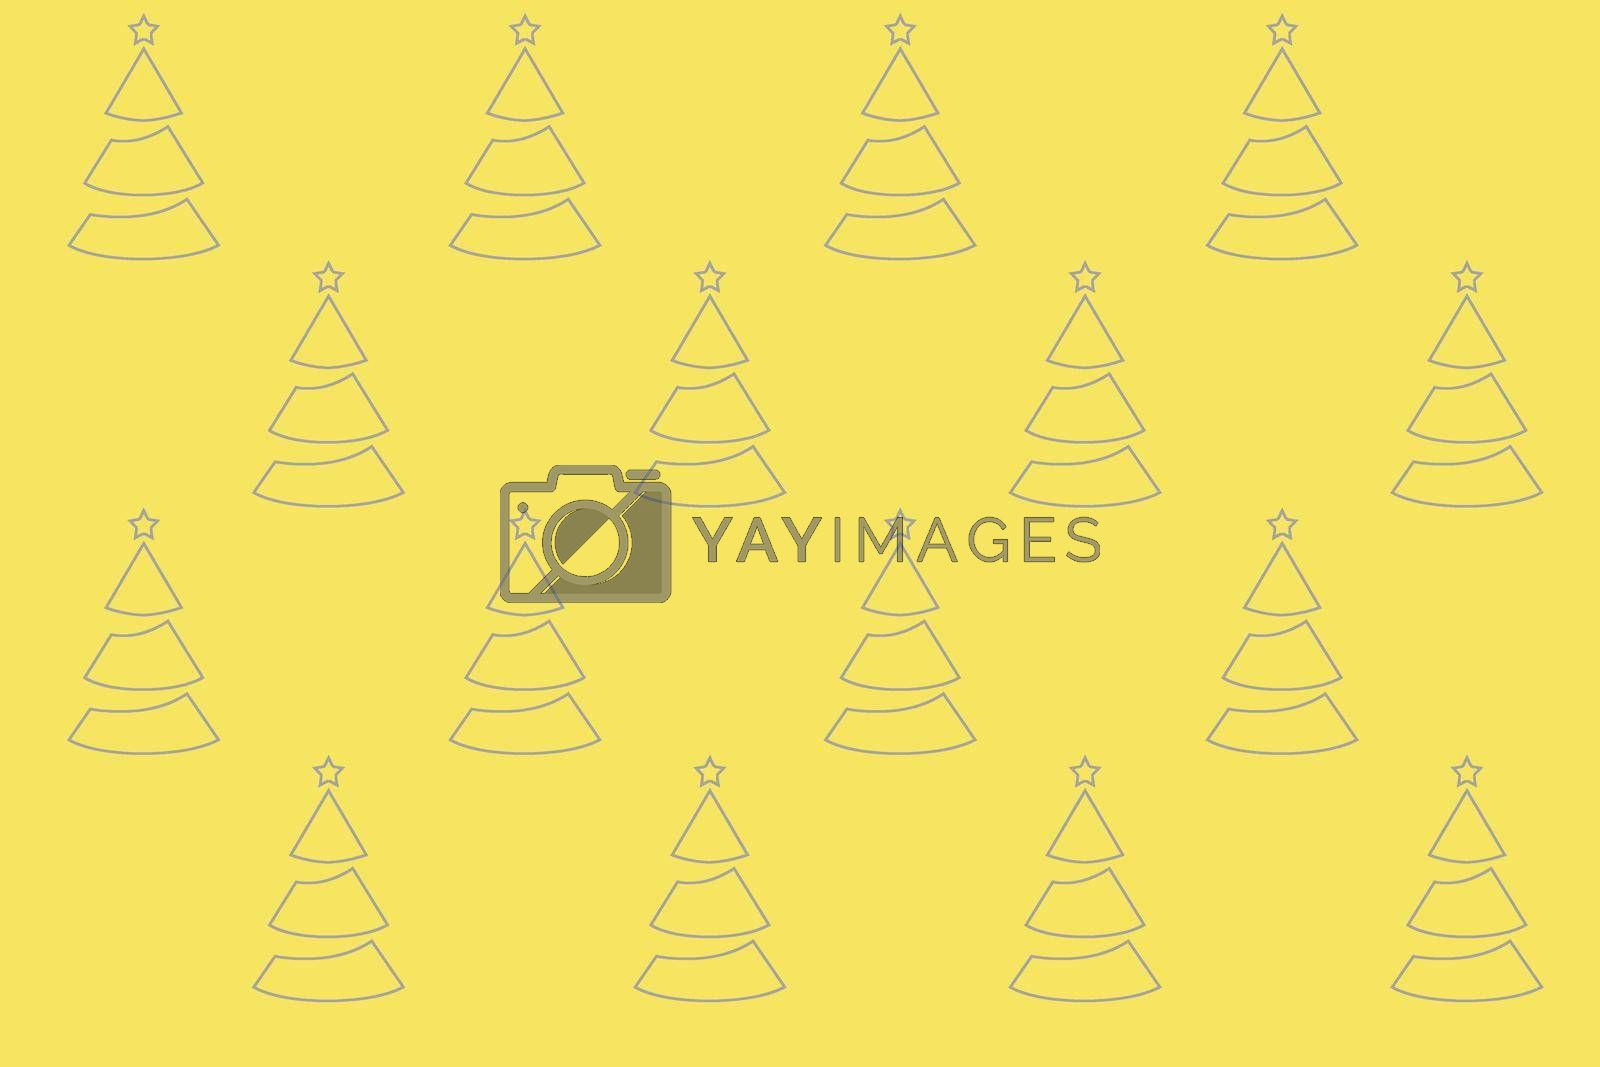 Pattern Christmas trees on a yellow background. Seamless pattern illustration for textiles, surfaces, packaging. New Year's illustration. Trend colors gray and yellow. . High quality photo